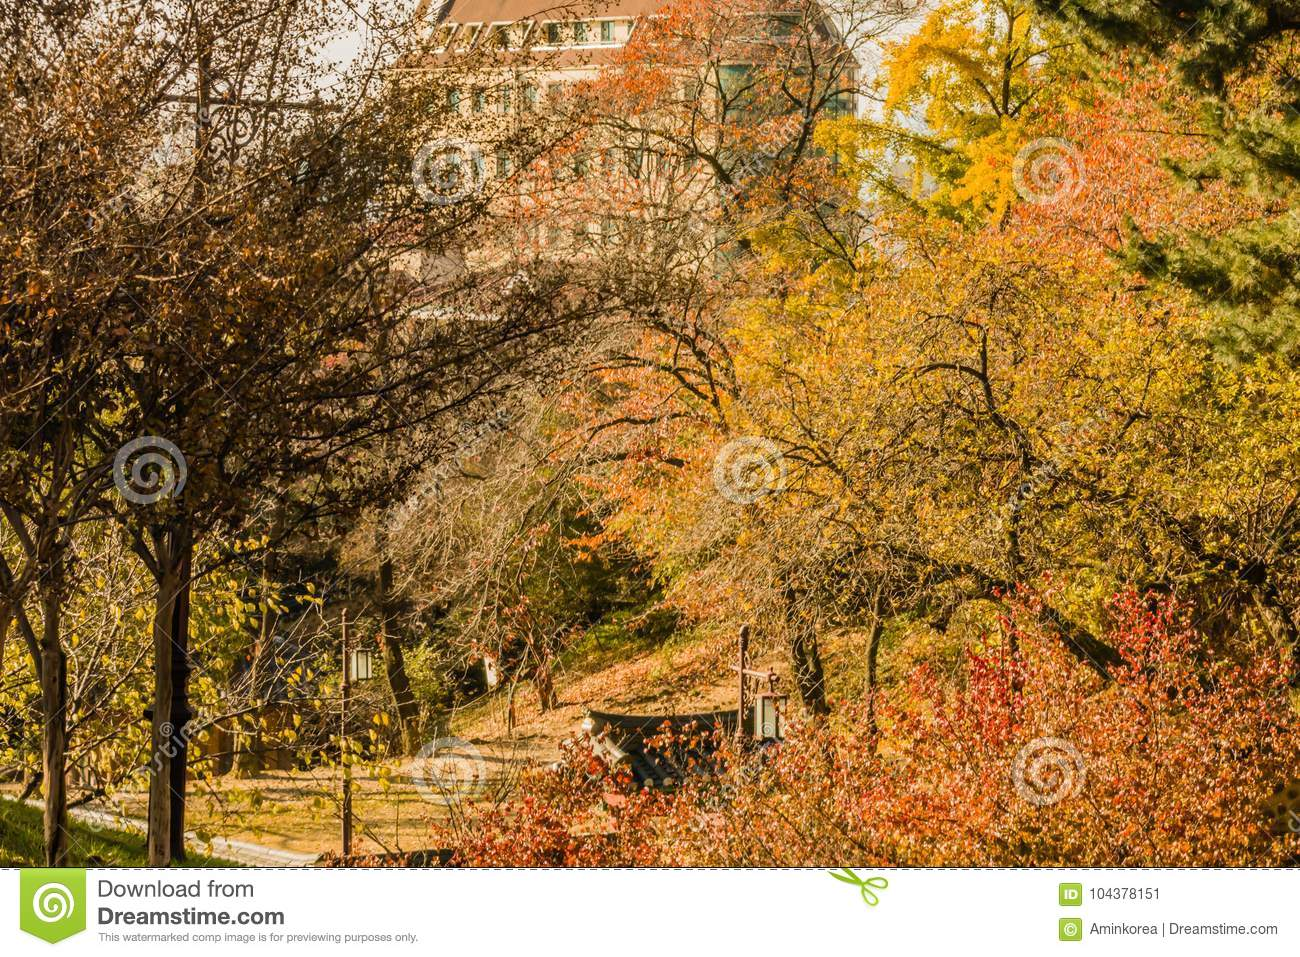 9a4c3e4905743 Landscape of a city park in Daejeon, South Korea, with trees in fall colors  with a massive stone brick apartment building in the background